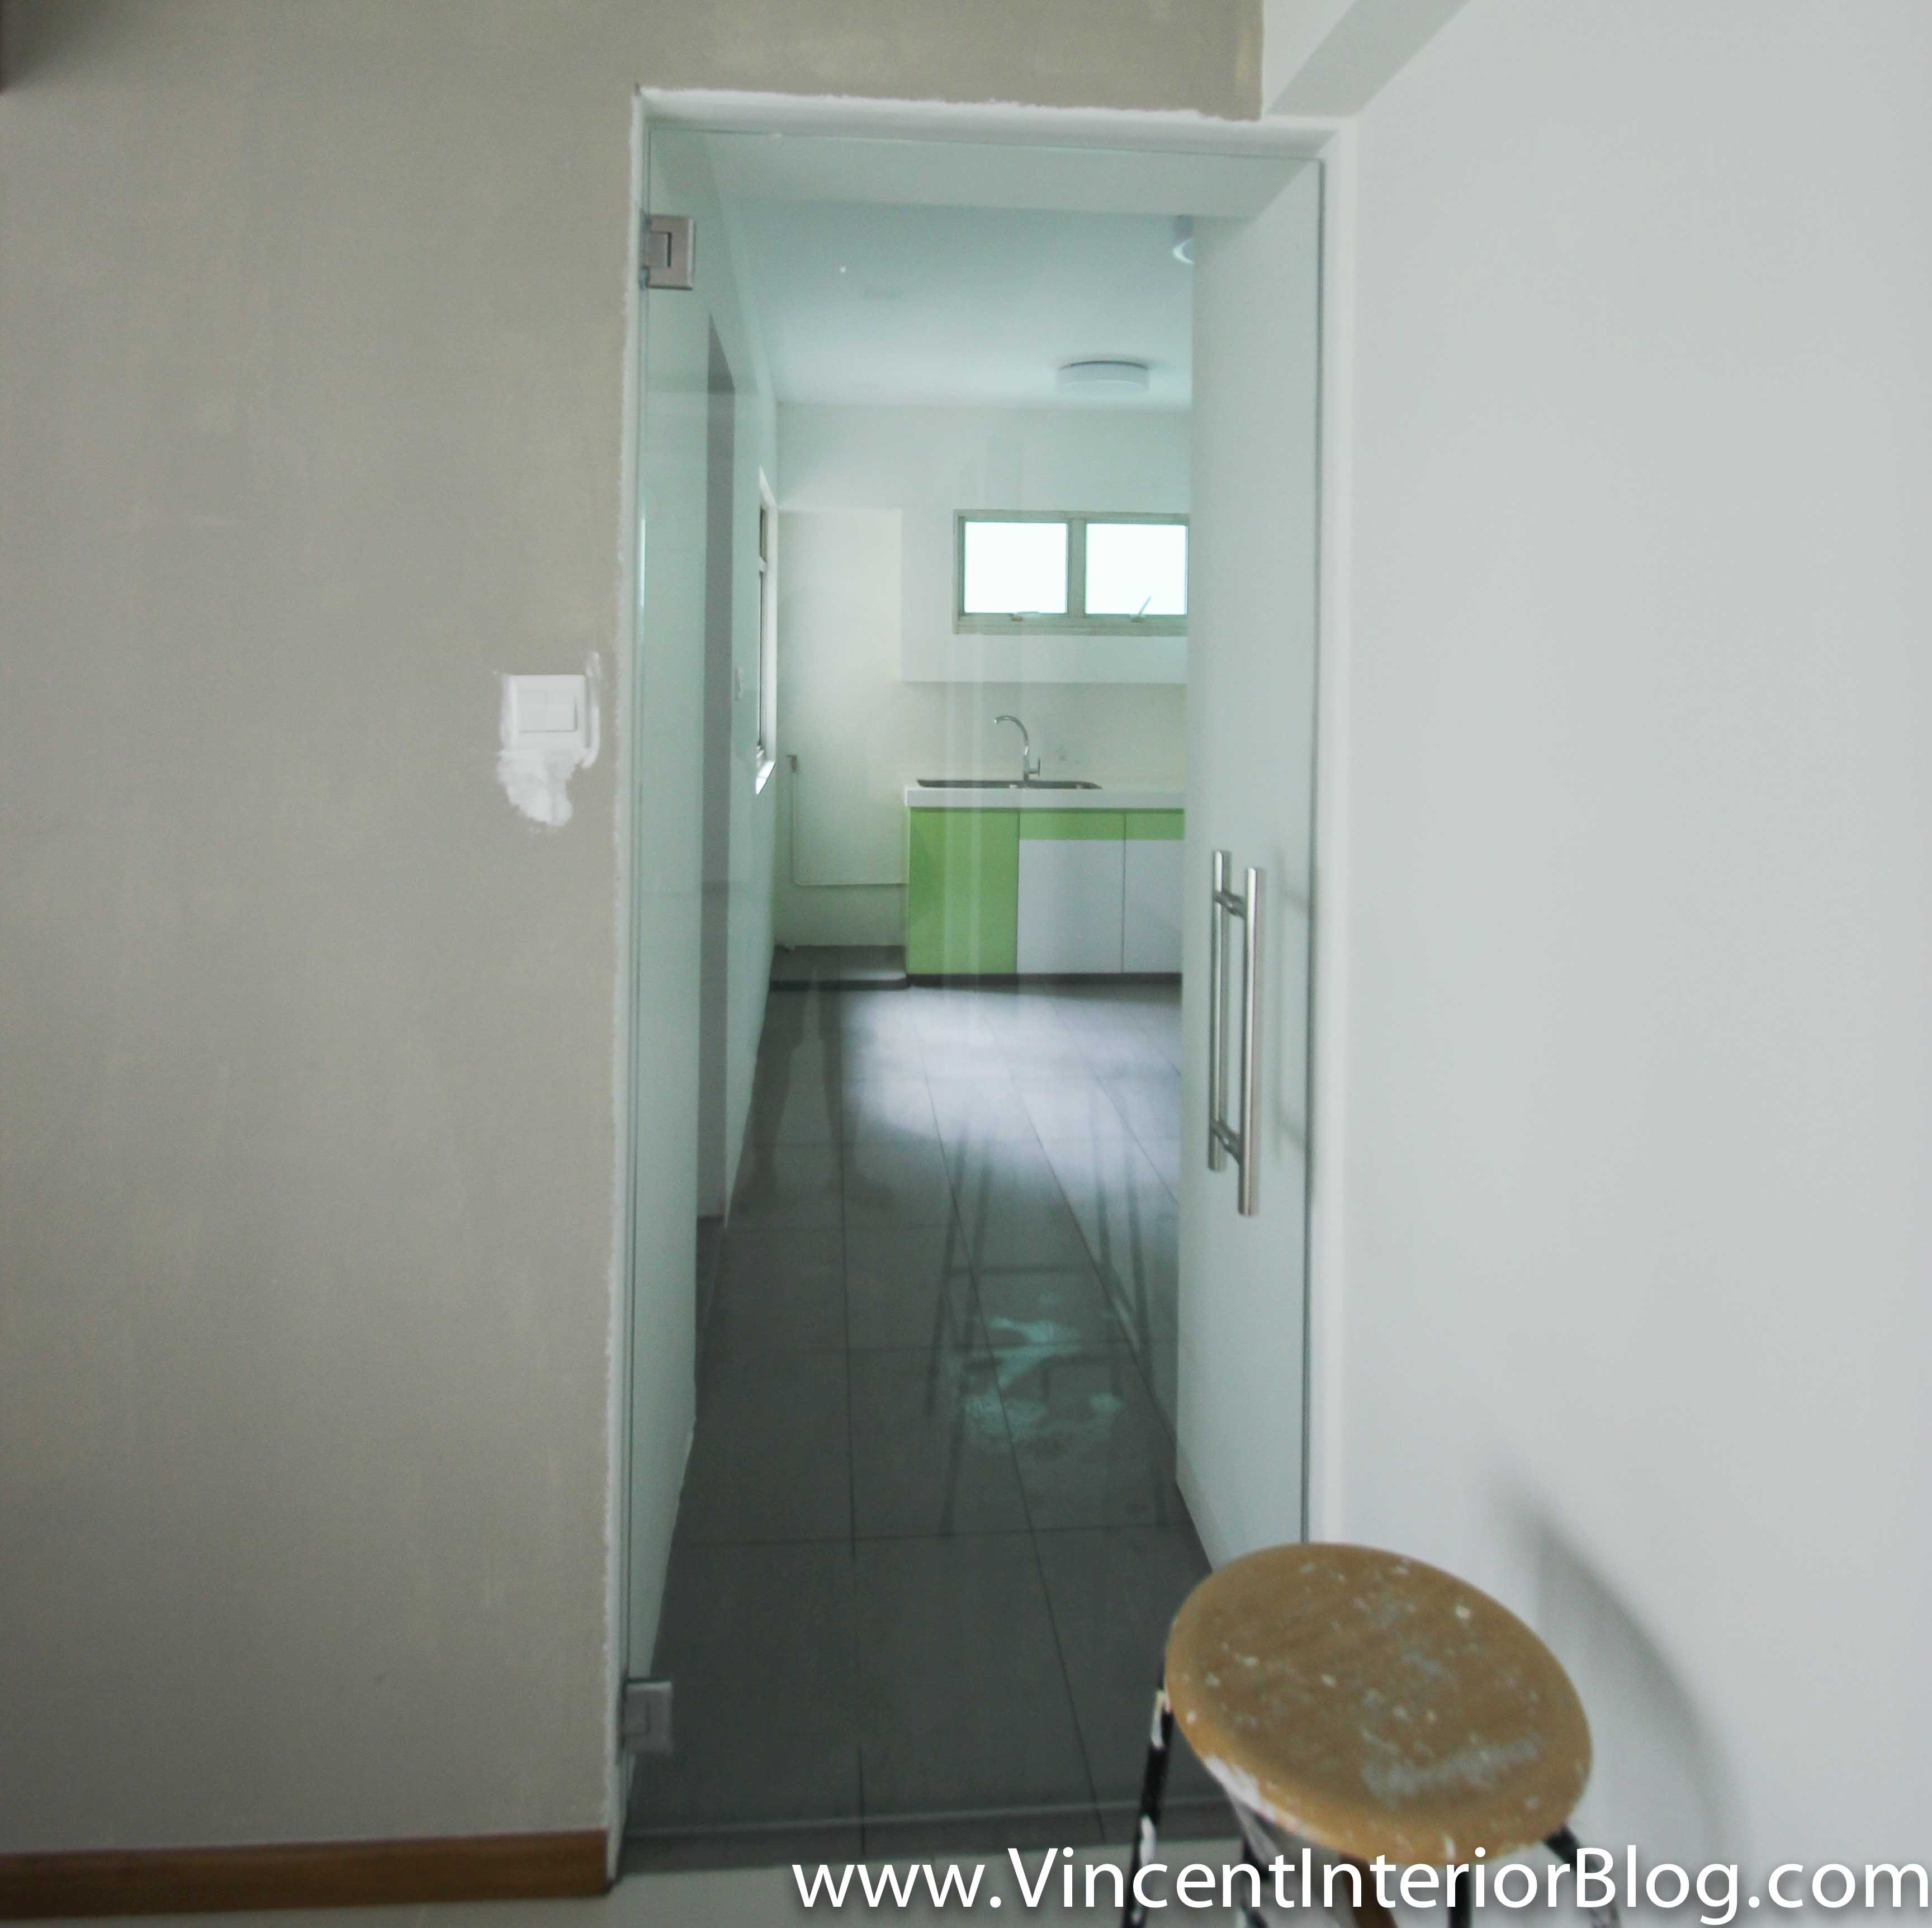 Punggol 4 room hdb renovation part 8 day 32 final finishing vincent interior blog Kitchen door design hdb